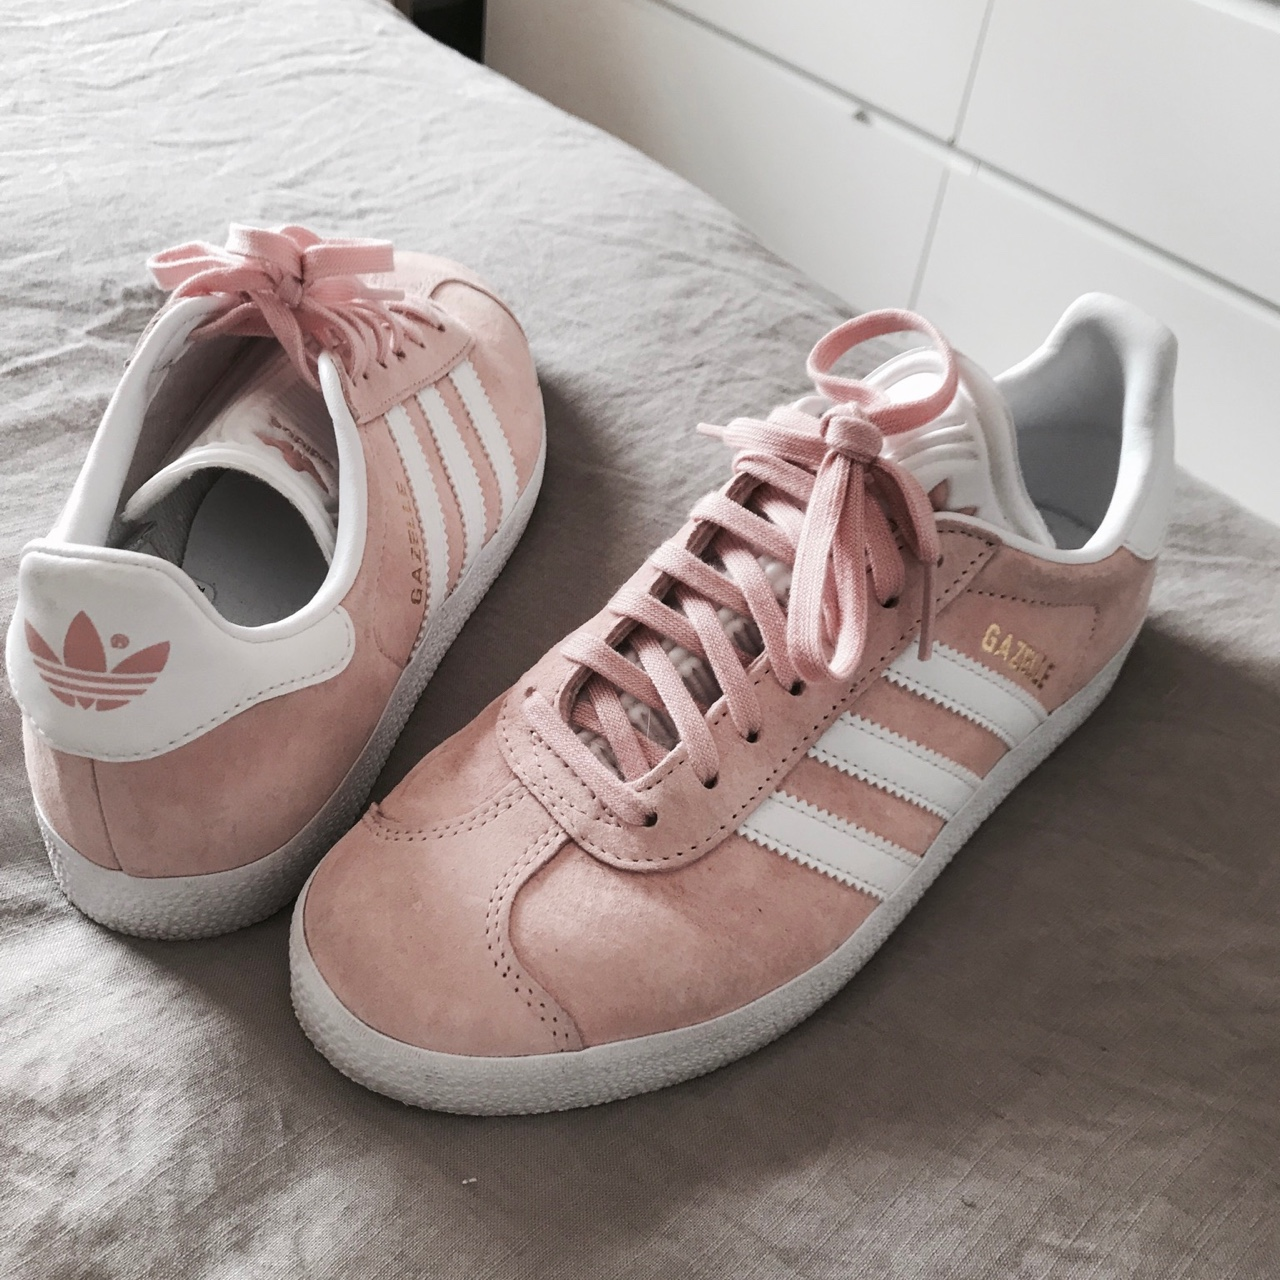 Baby Pink adidas gazelle shoes worn once size us 6